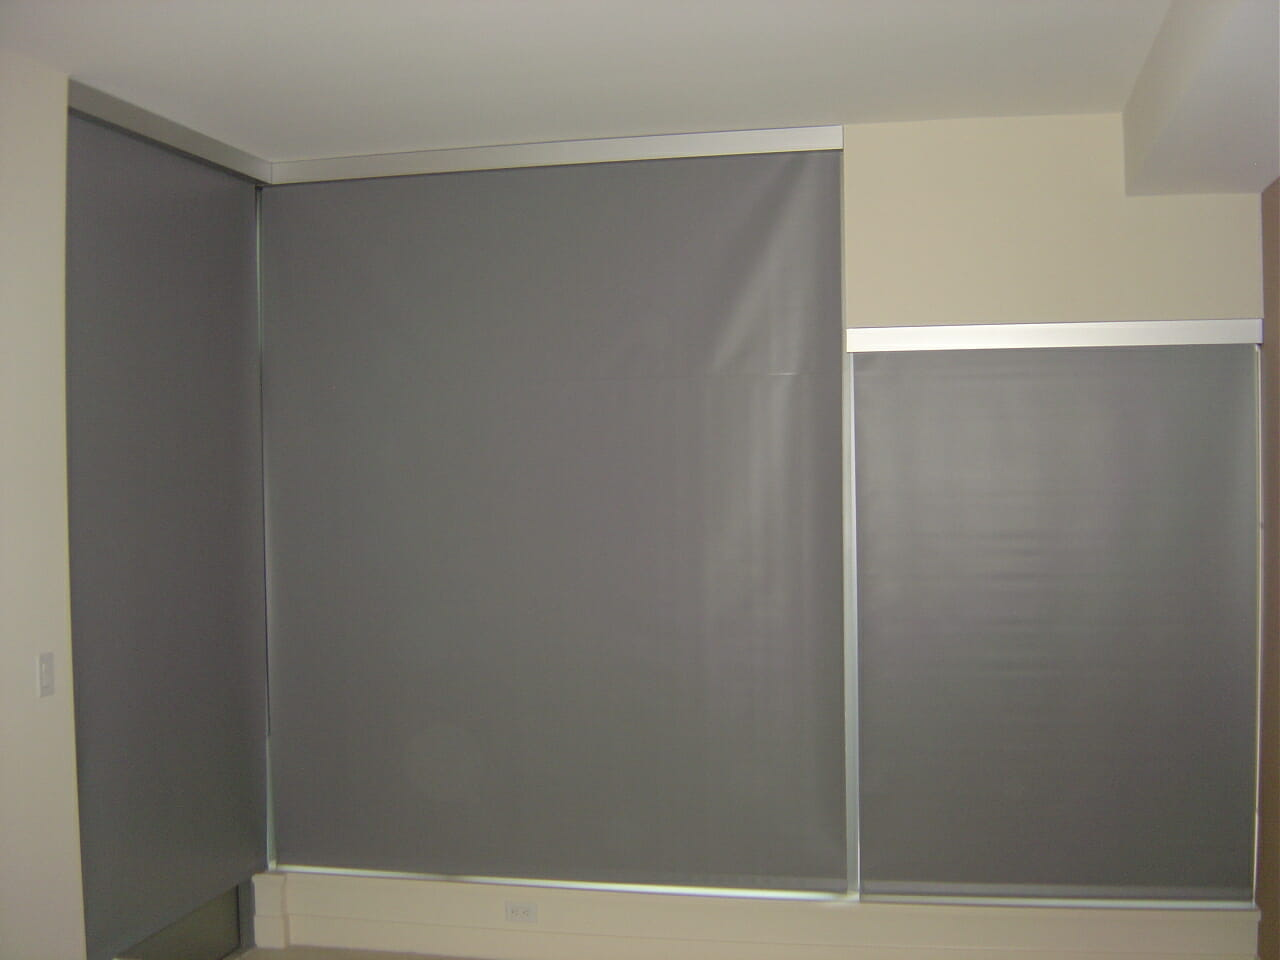 Blinds for arched windows - Blackout Curtains Amp Shades 3 Blind Mice Window Coverings